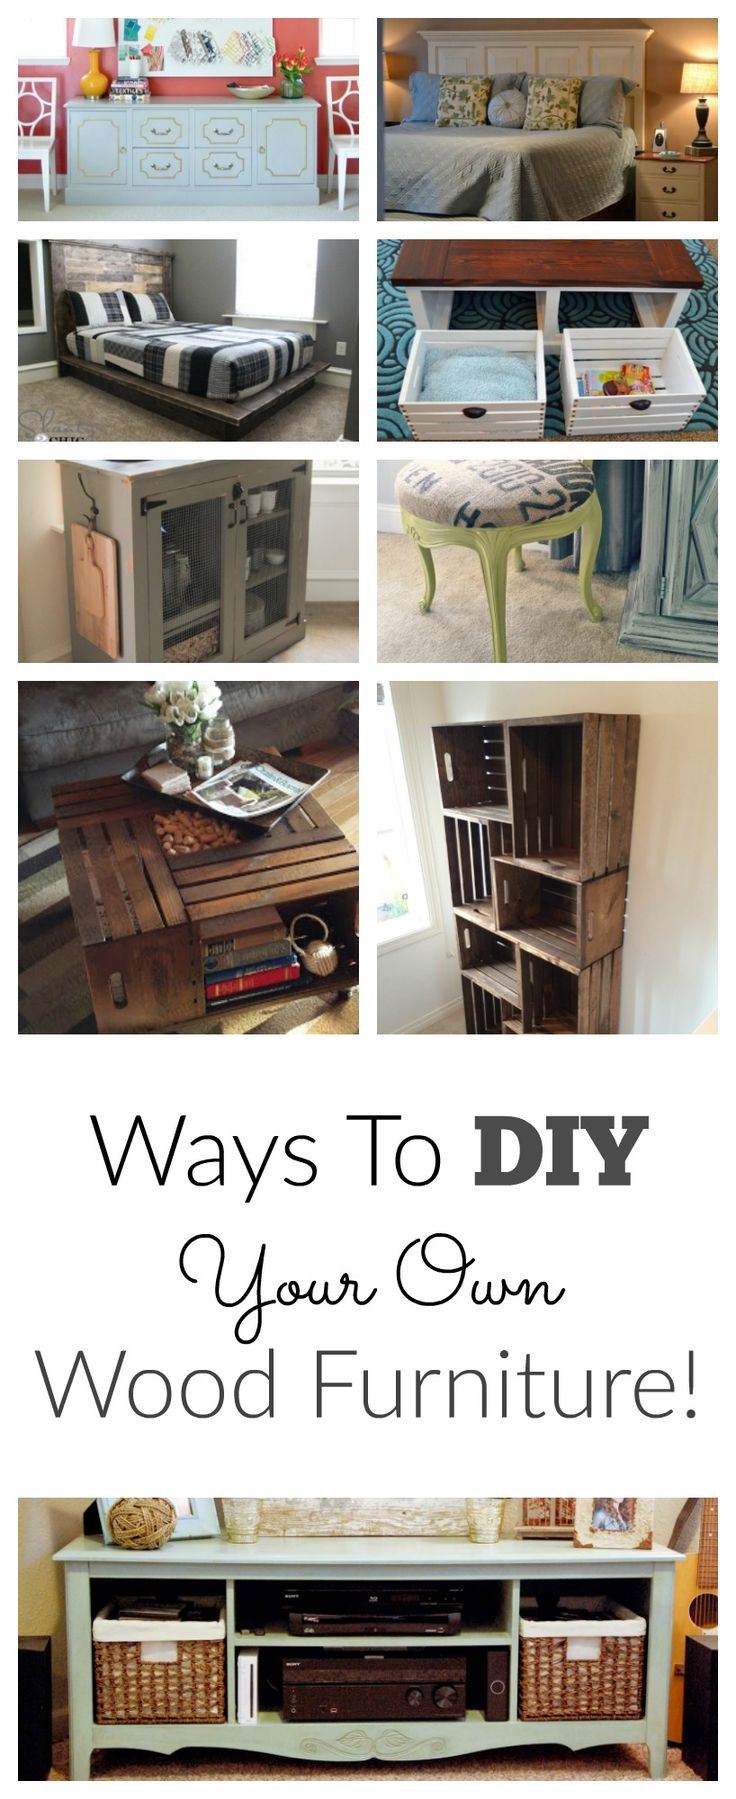 If you're looking for that smooth painted finish for your next DIY project, look no further. Getting a smooth painted finish with these great tips!